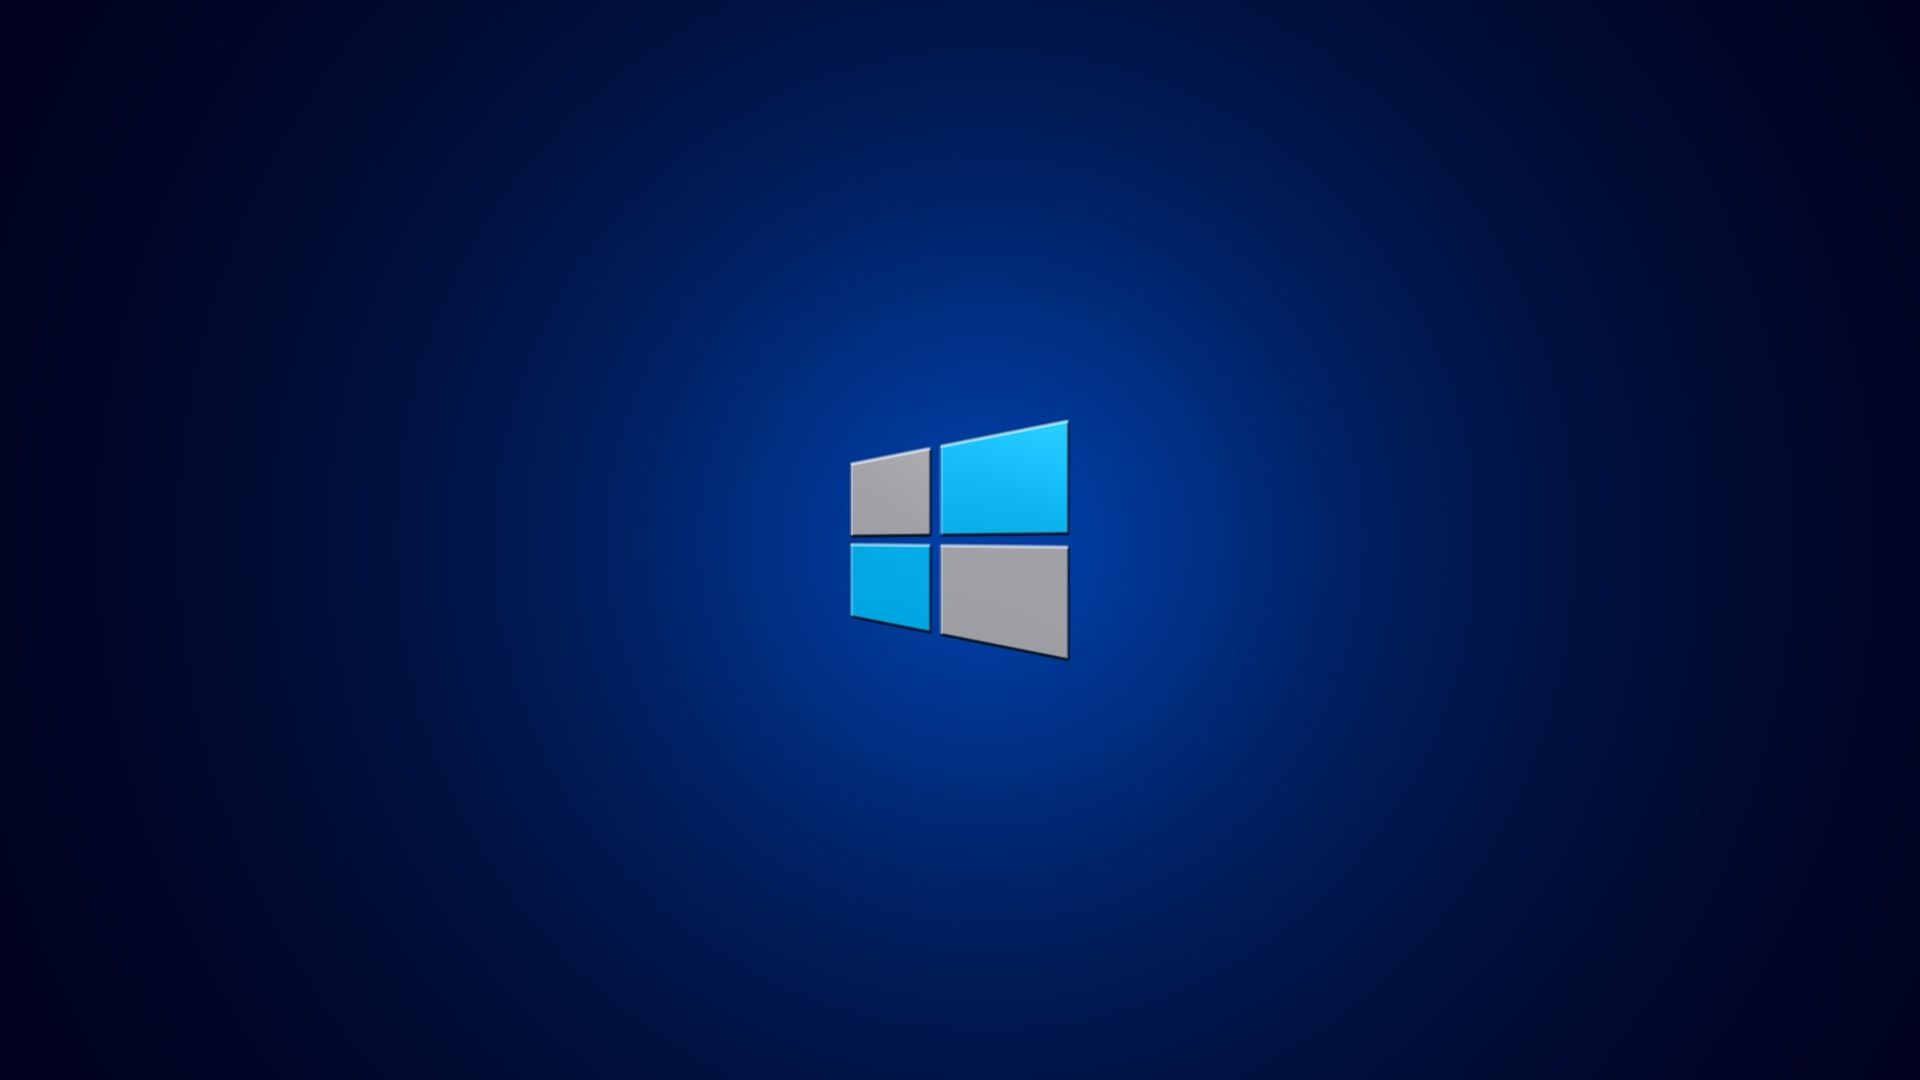 Windows 8 Minimal Official Logo 1080p HD Wallpaper 1080p